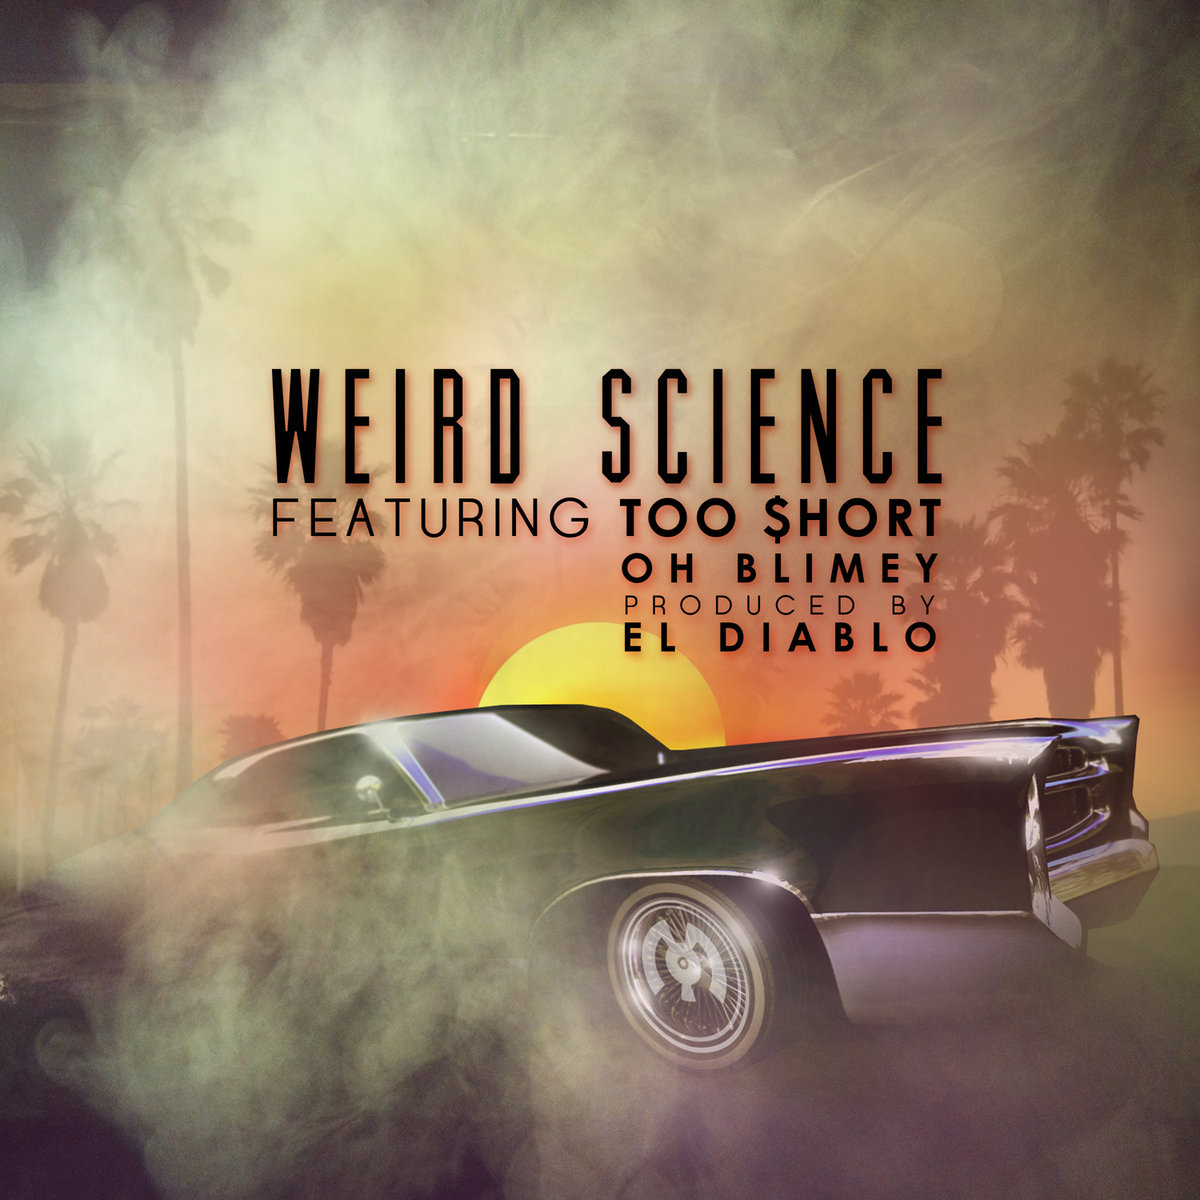 Too $hort, Oh Blimey, El Diablo - Weird Science (Smash & Grab Remix) @ 'Weird Science' album (electronic, dubstep)